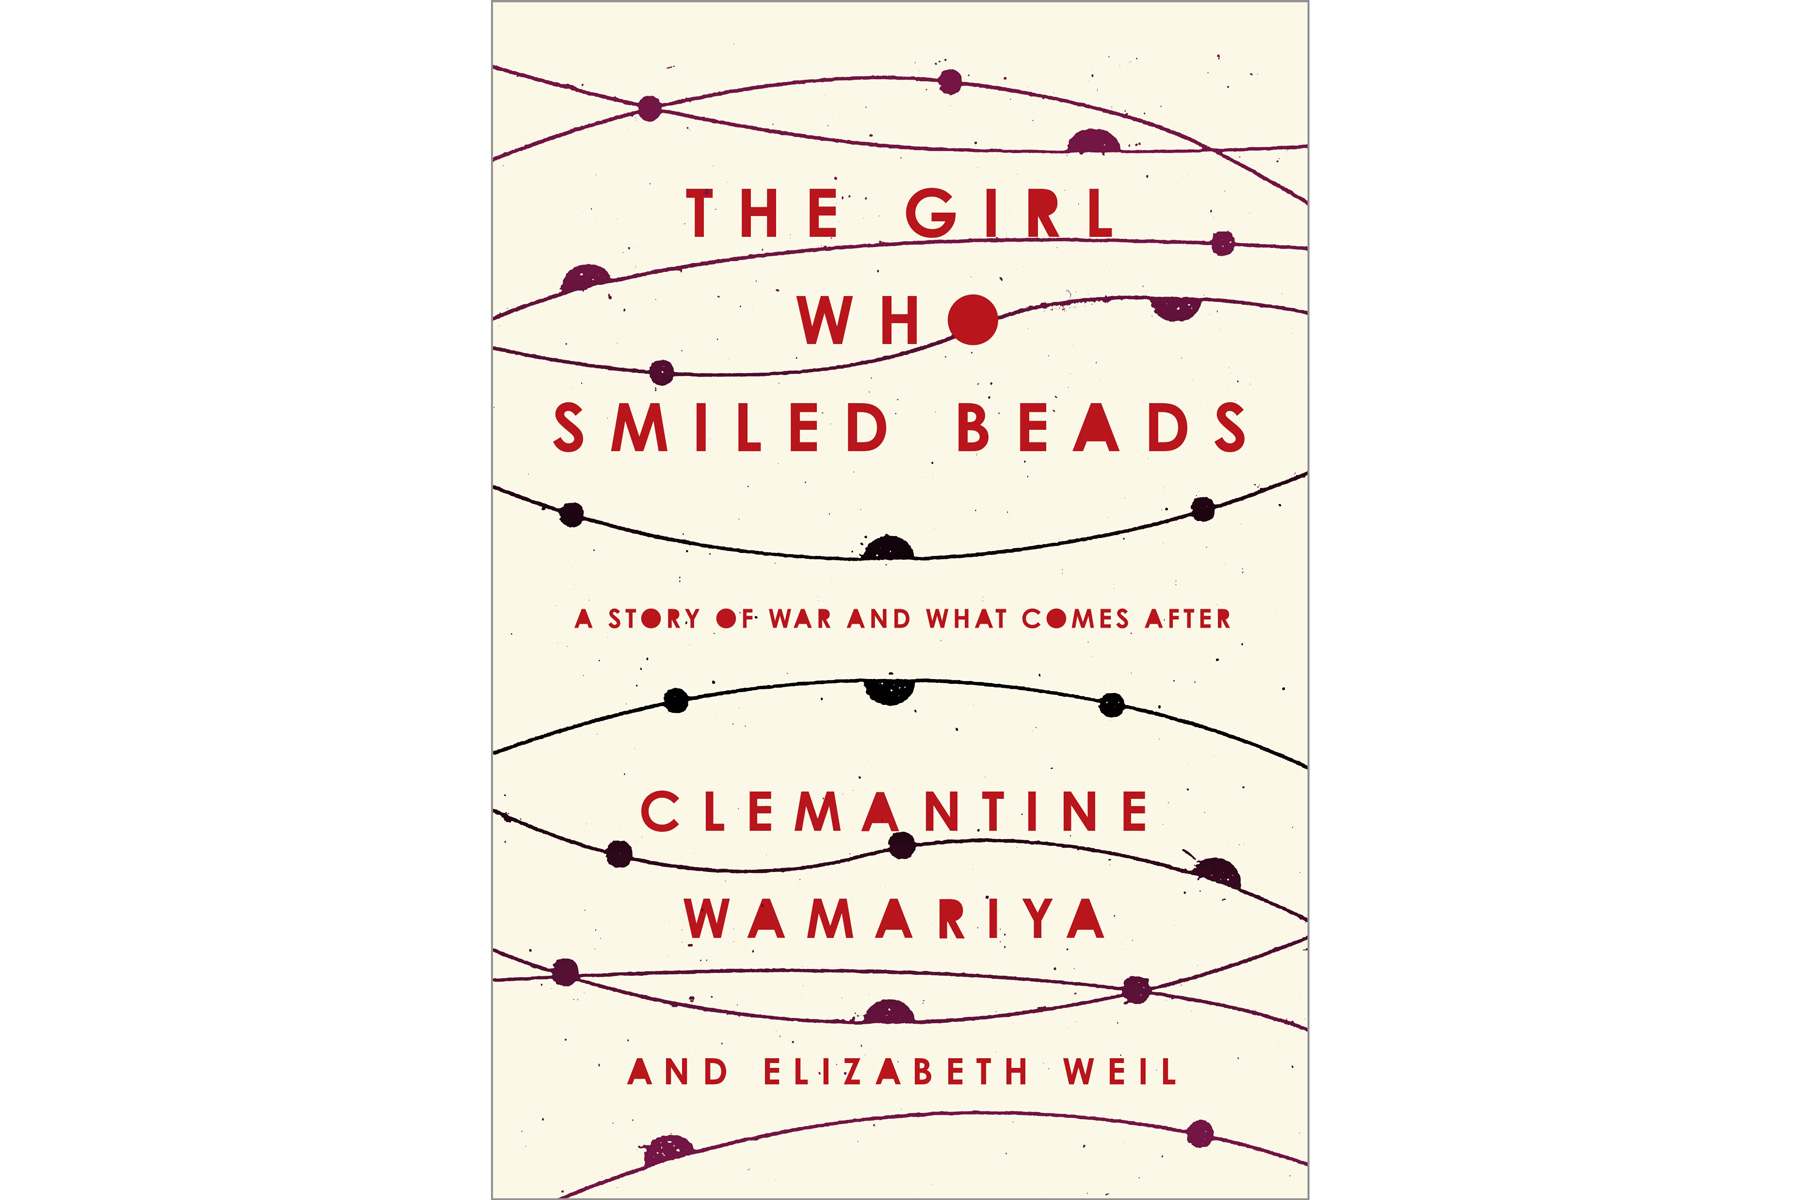 The Girl Who Smiled Beads, by Clemantine Wamariya and Elizabeth Weil